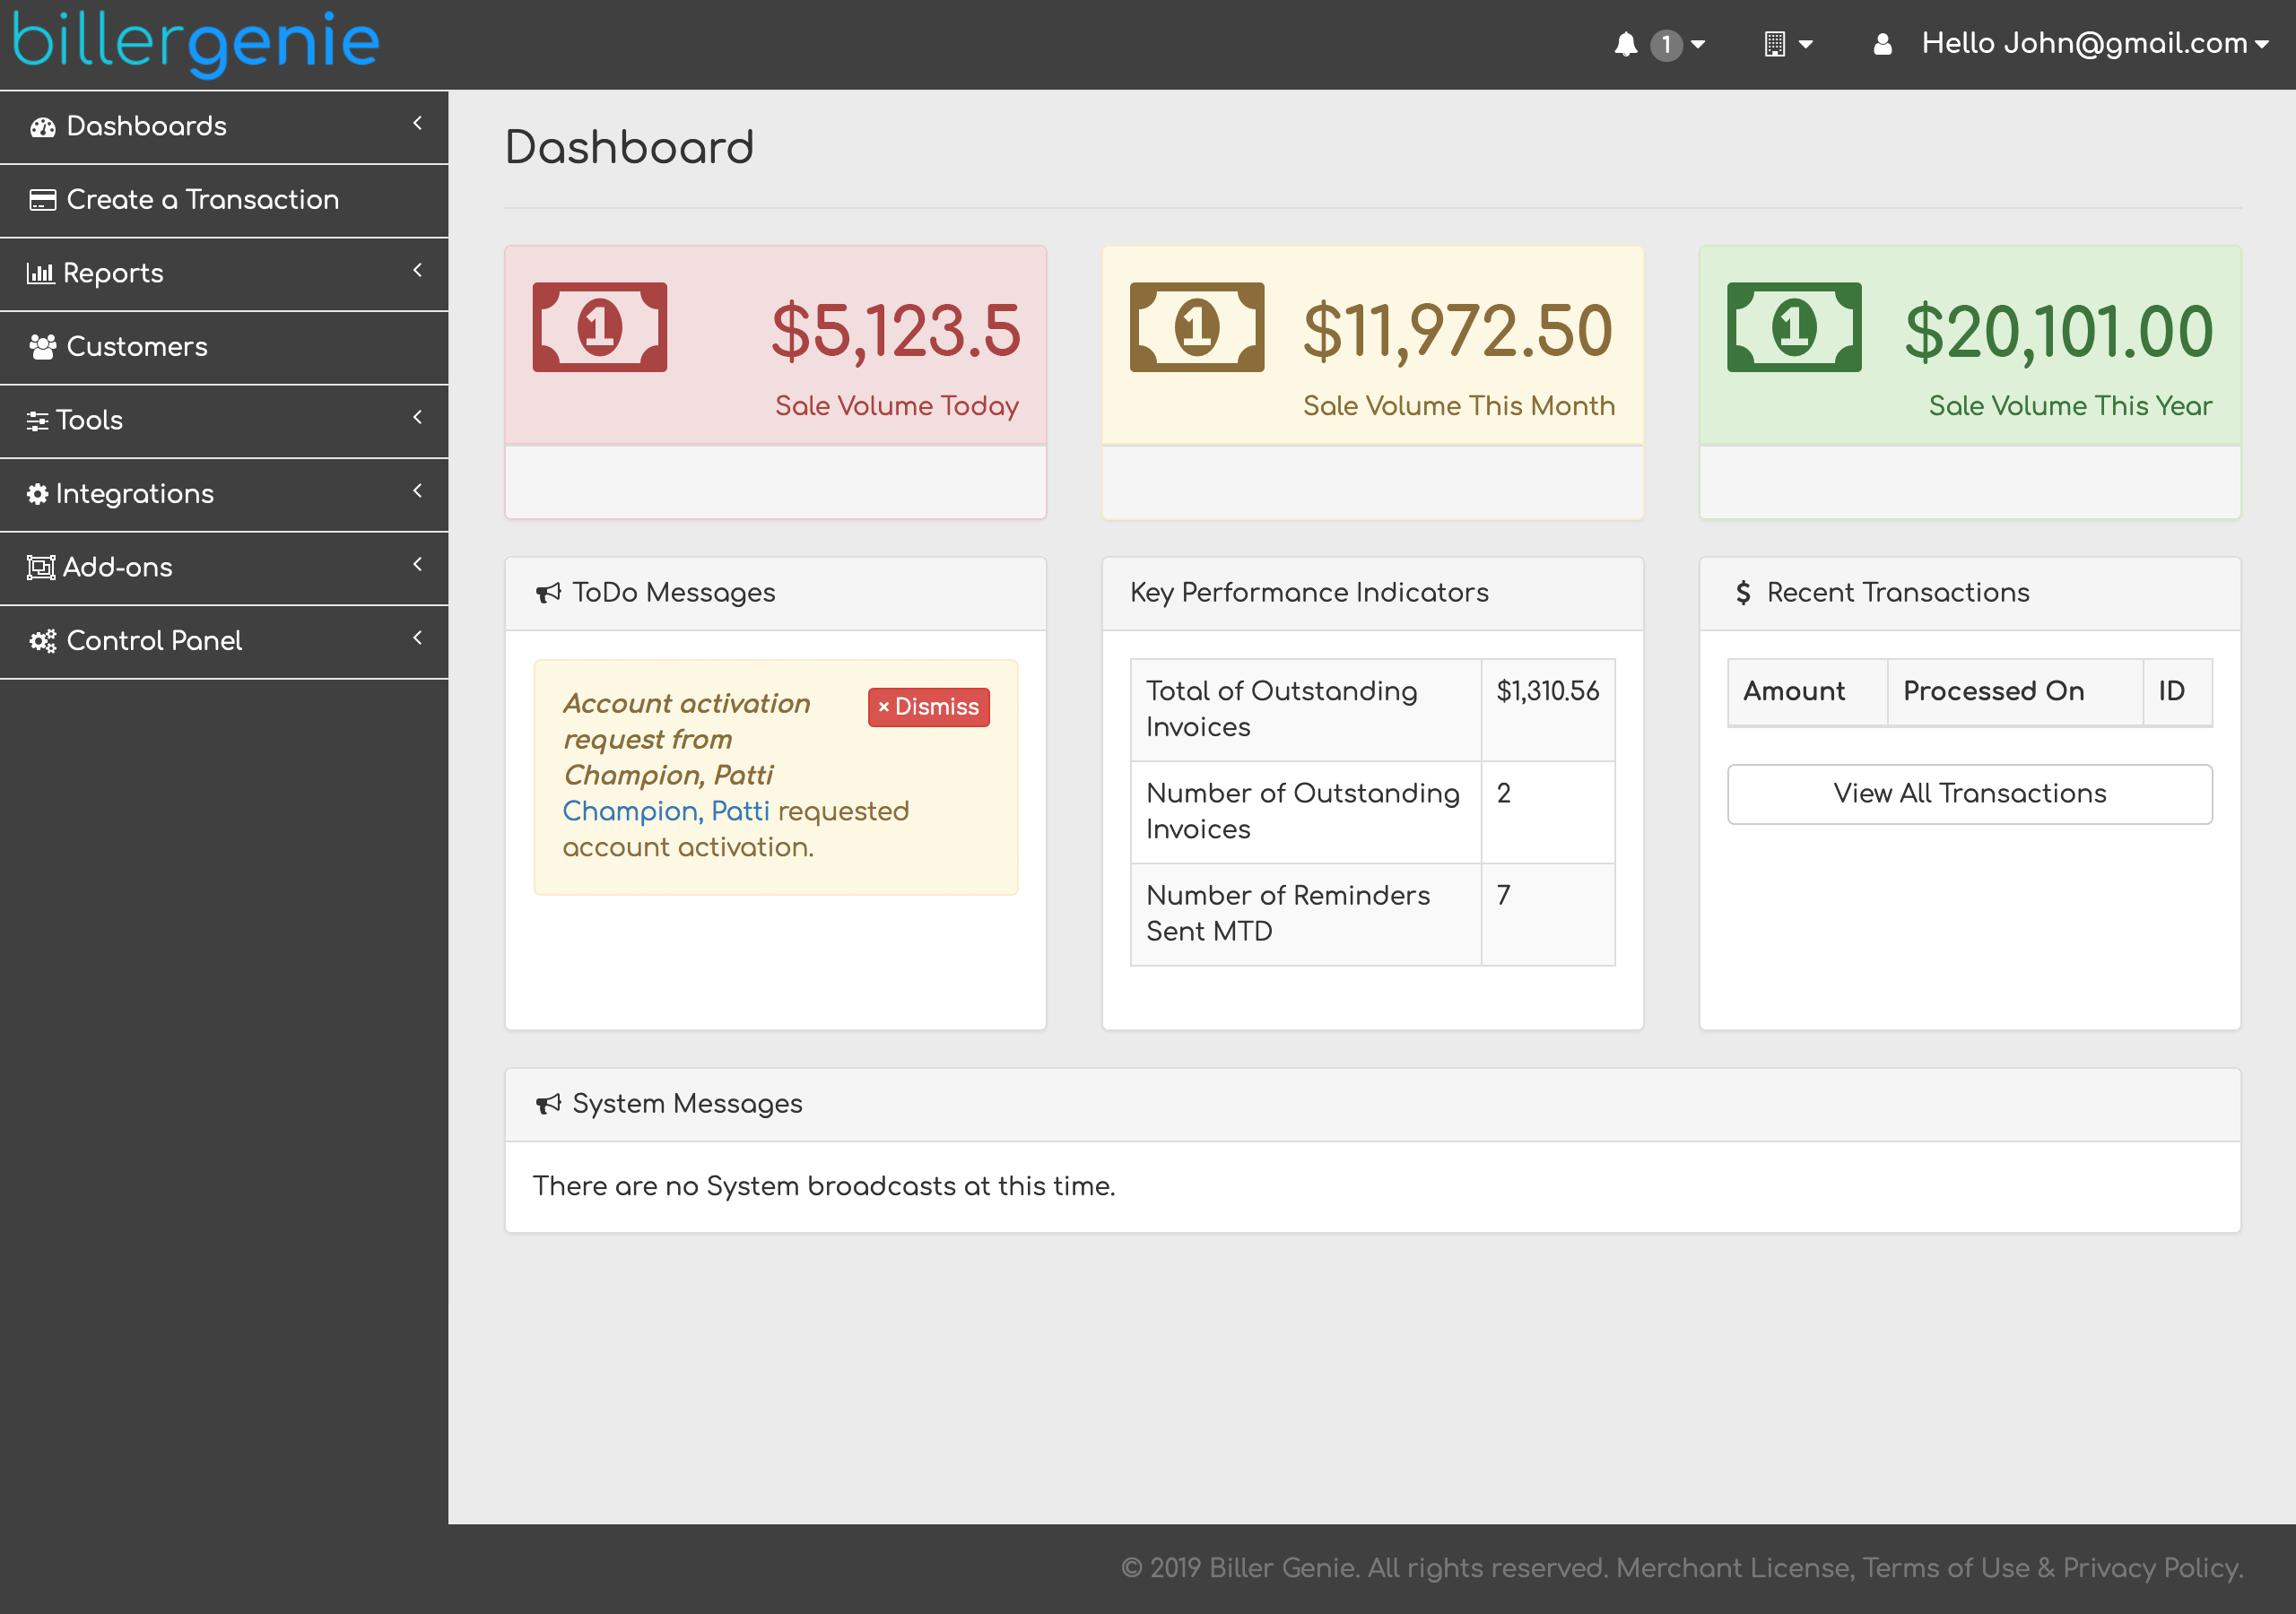 The main dashboard gives you a snapshot of your receivables, allowing you to see the cash flow coming into your business.